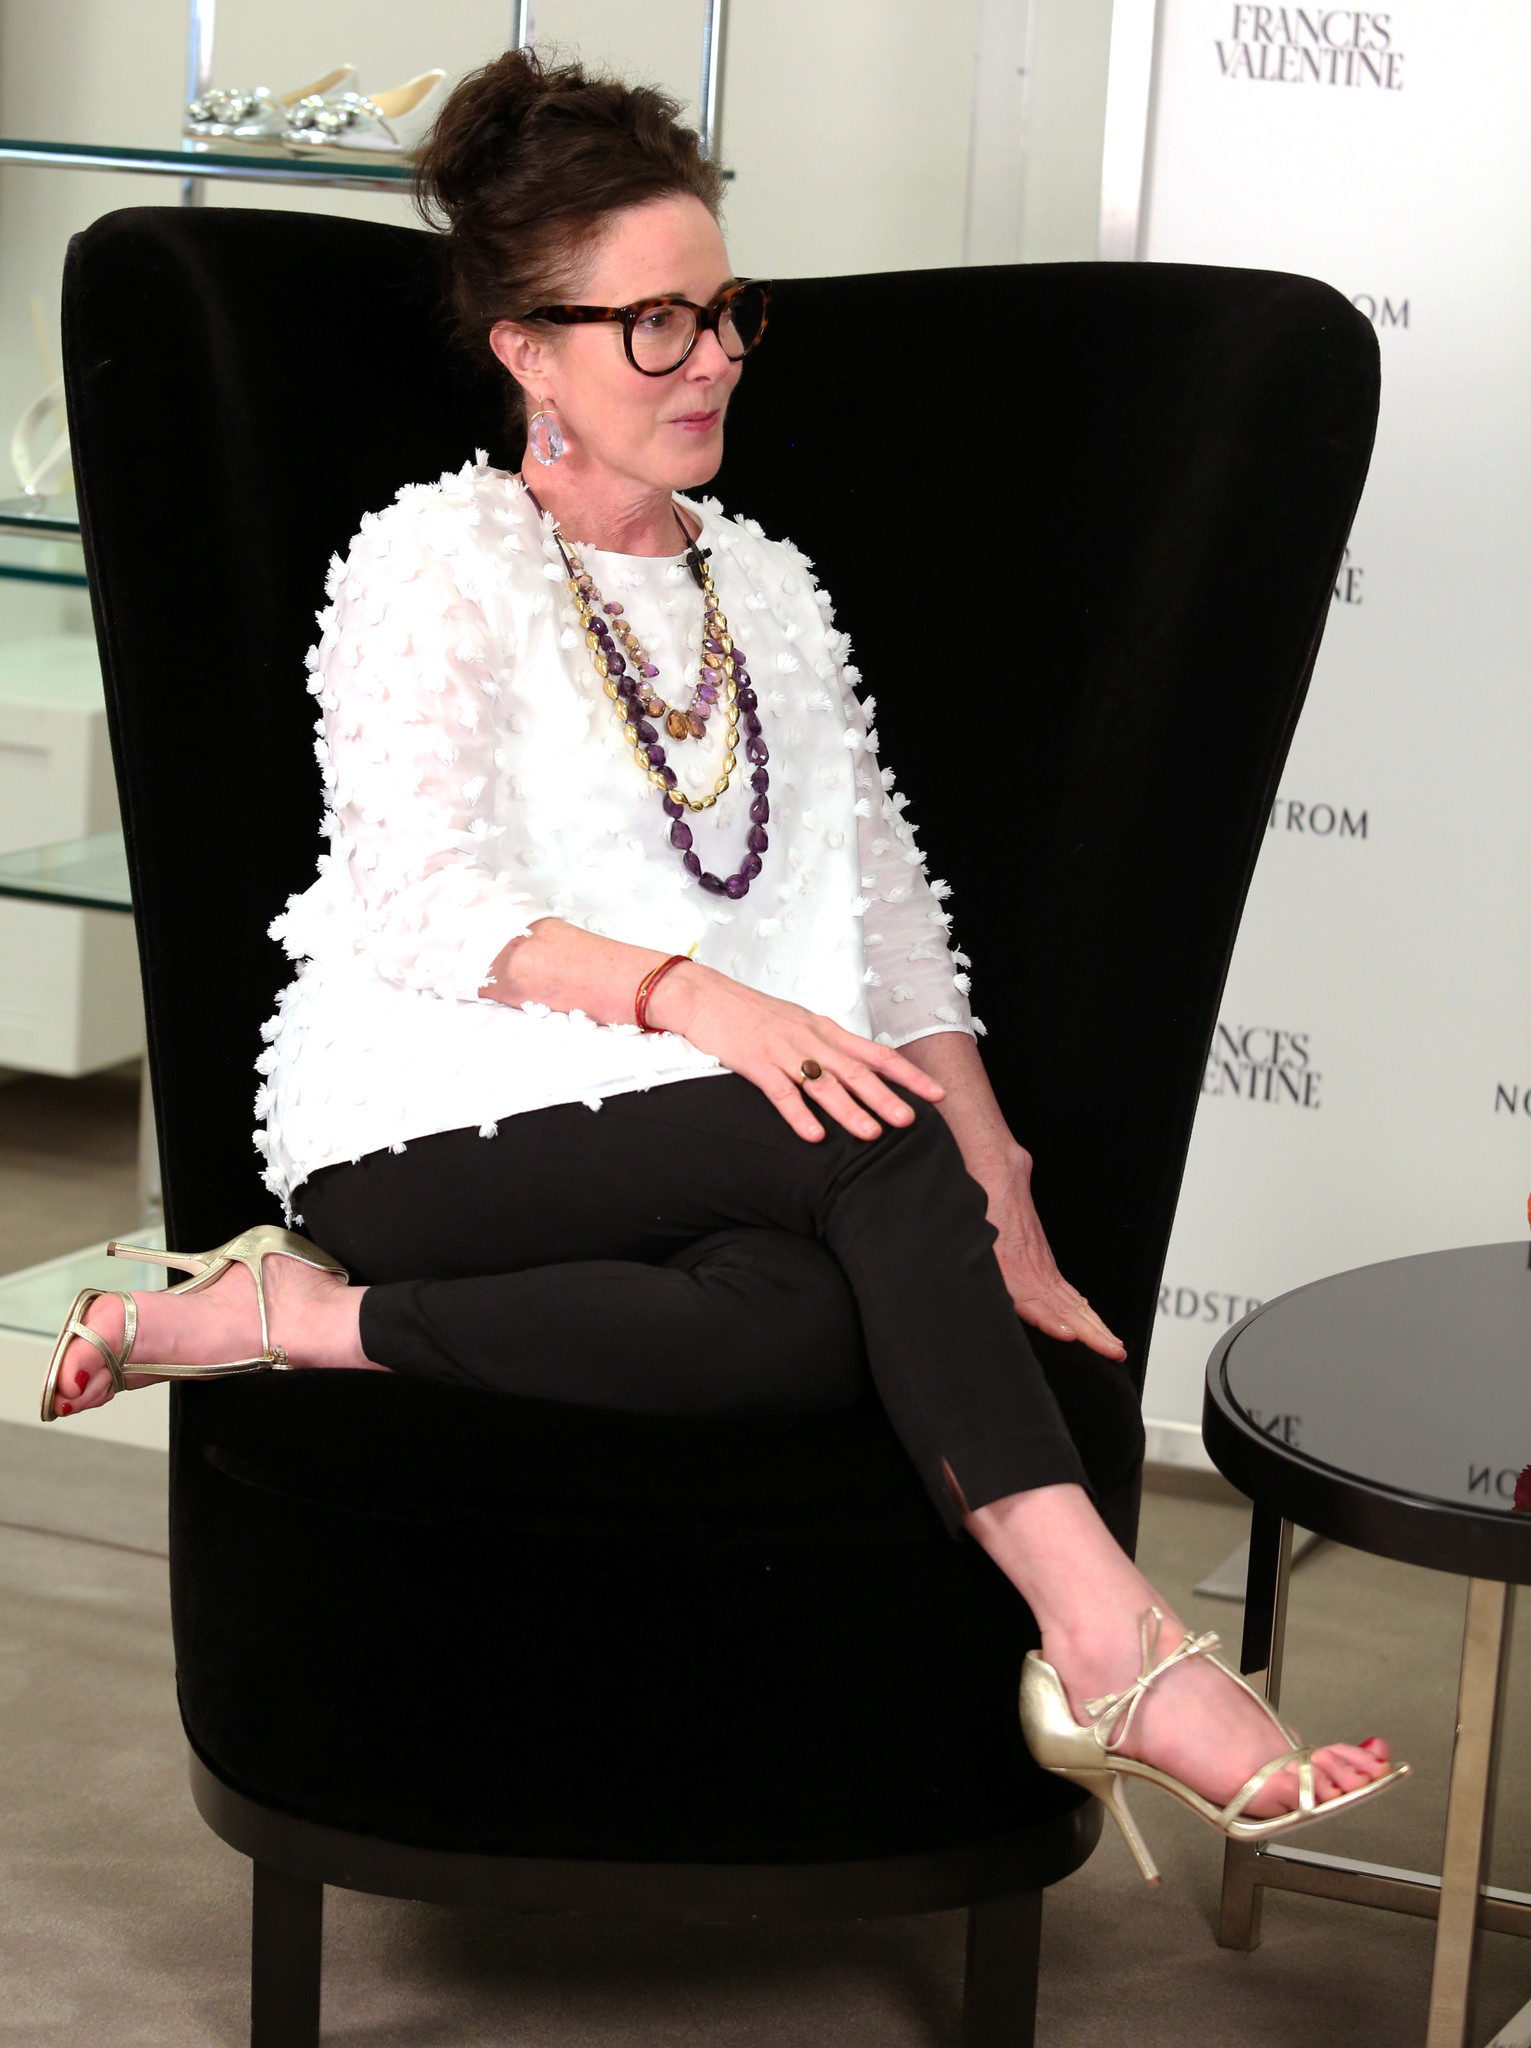 Designer Kate Spade Launches New Frances Valentine Line In